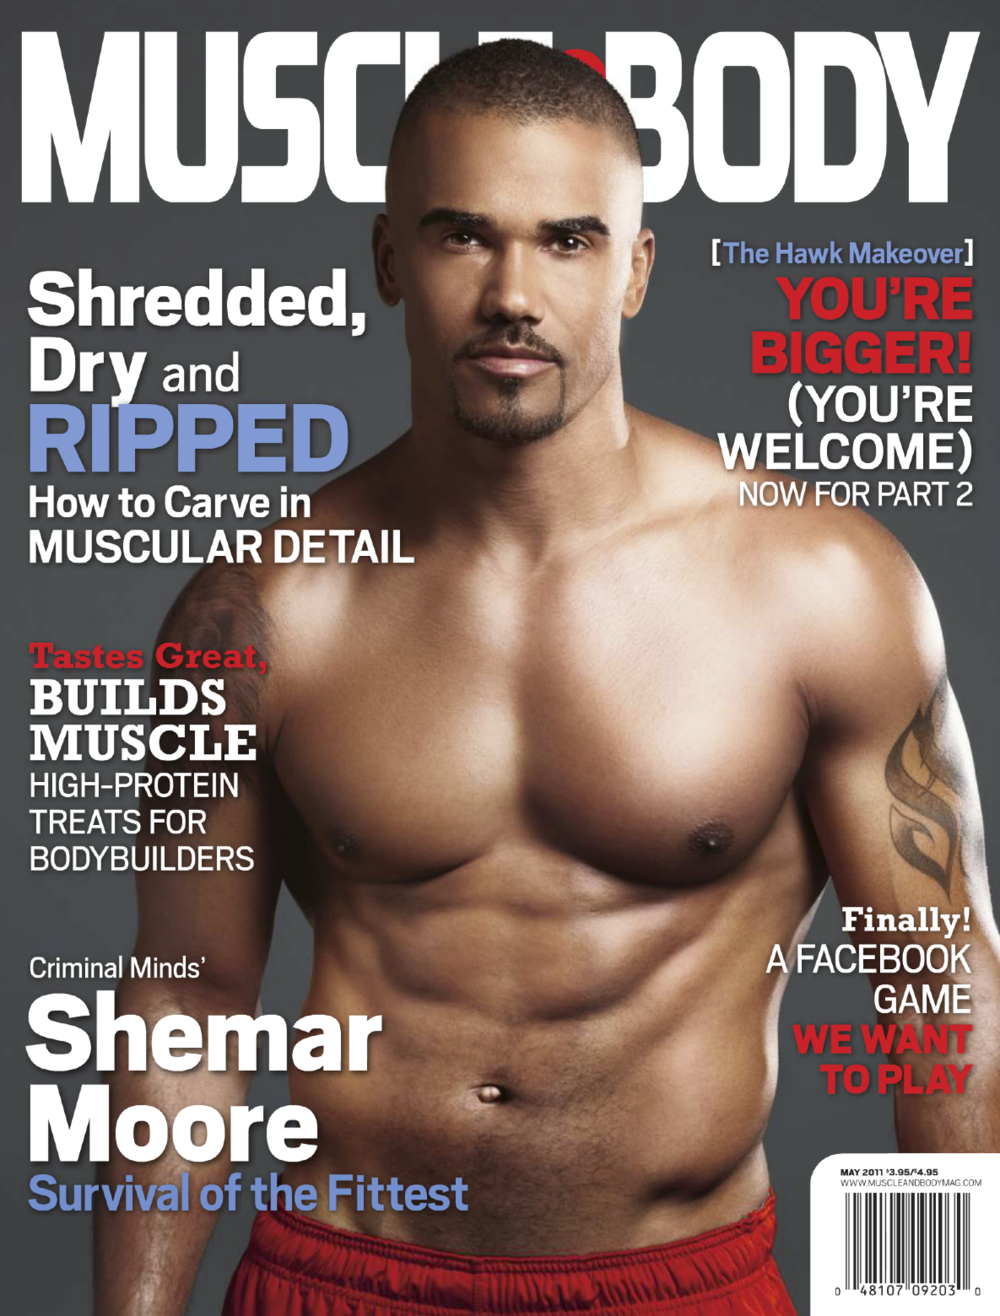 MUSCLE & BODY • MAY 2011